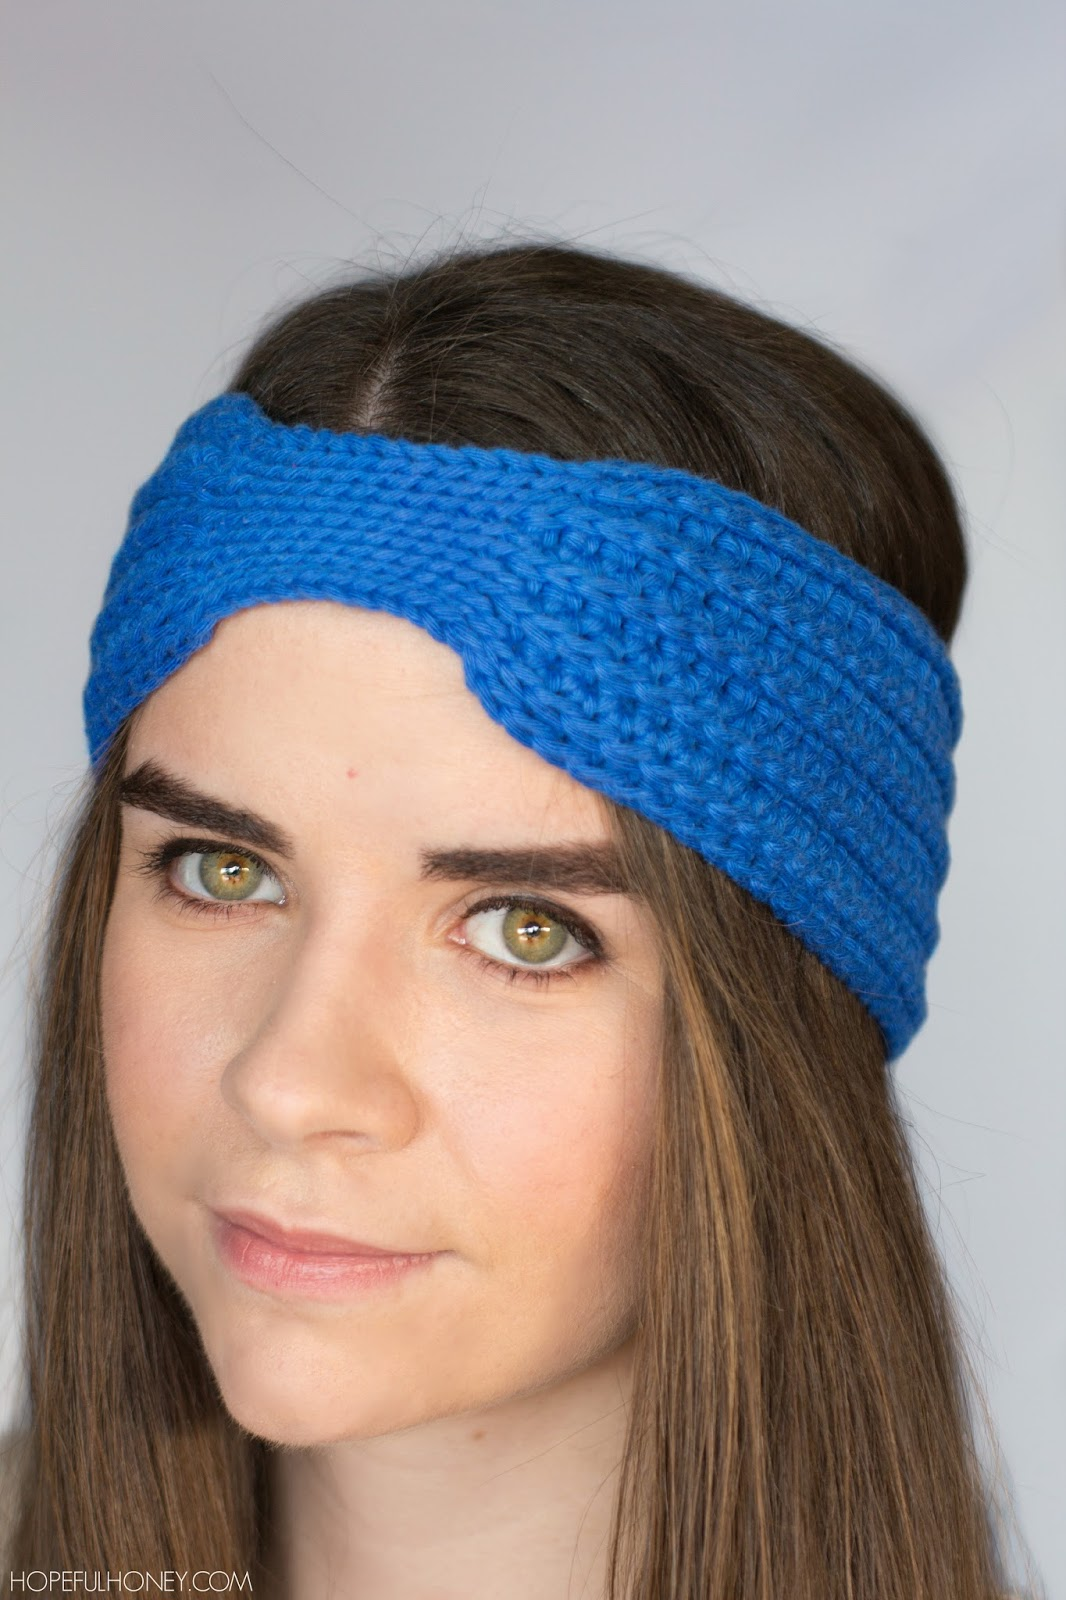 Free Crochet Pattern For Turban Headband : Hopeful Honey Craft, Crochet, Create: July 2015